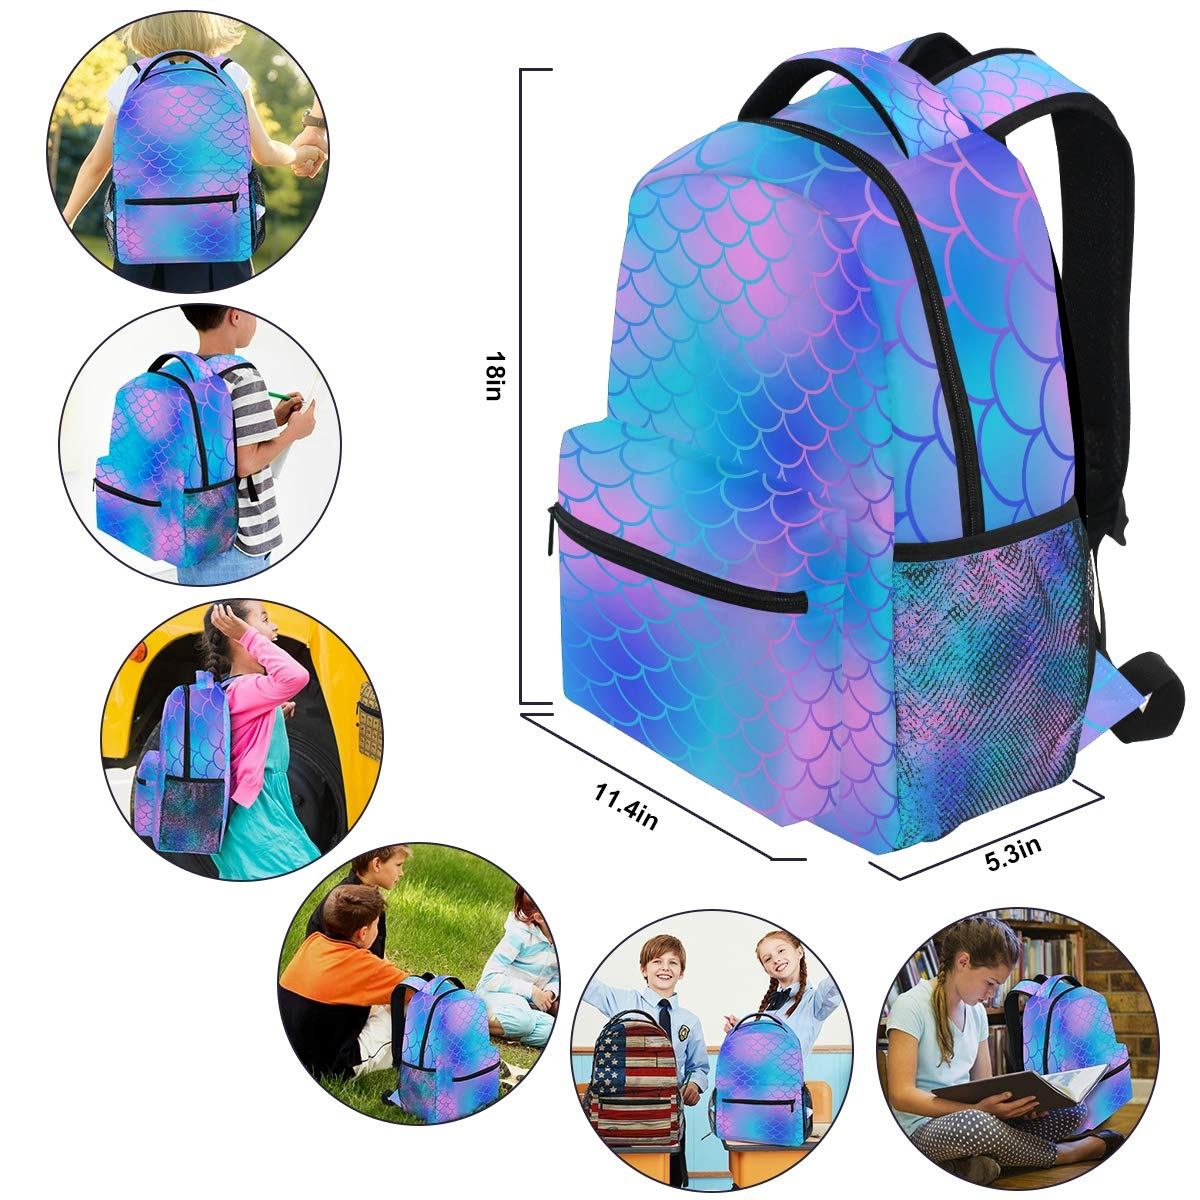 Funnycokid Mermaid Backpack Girls Fish Scale Daypack Rucksack for Sports and Traveling,Teenagers Canvas School Book Bag with Bottle Side Pockets